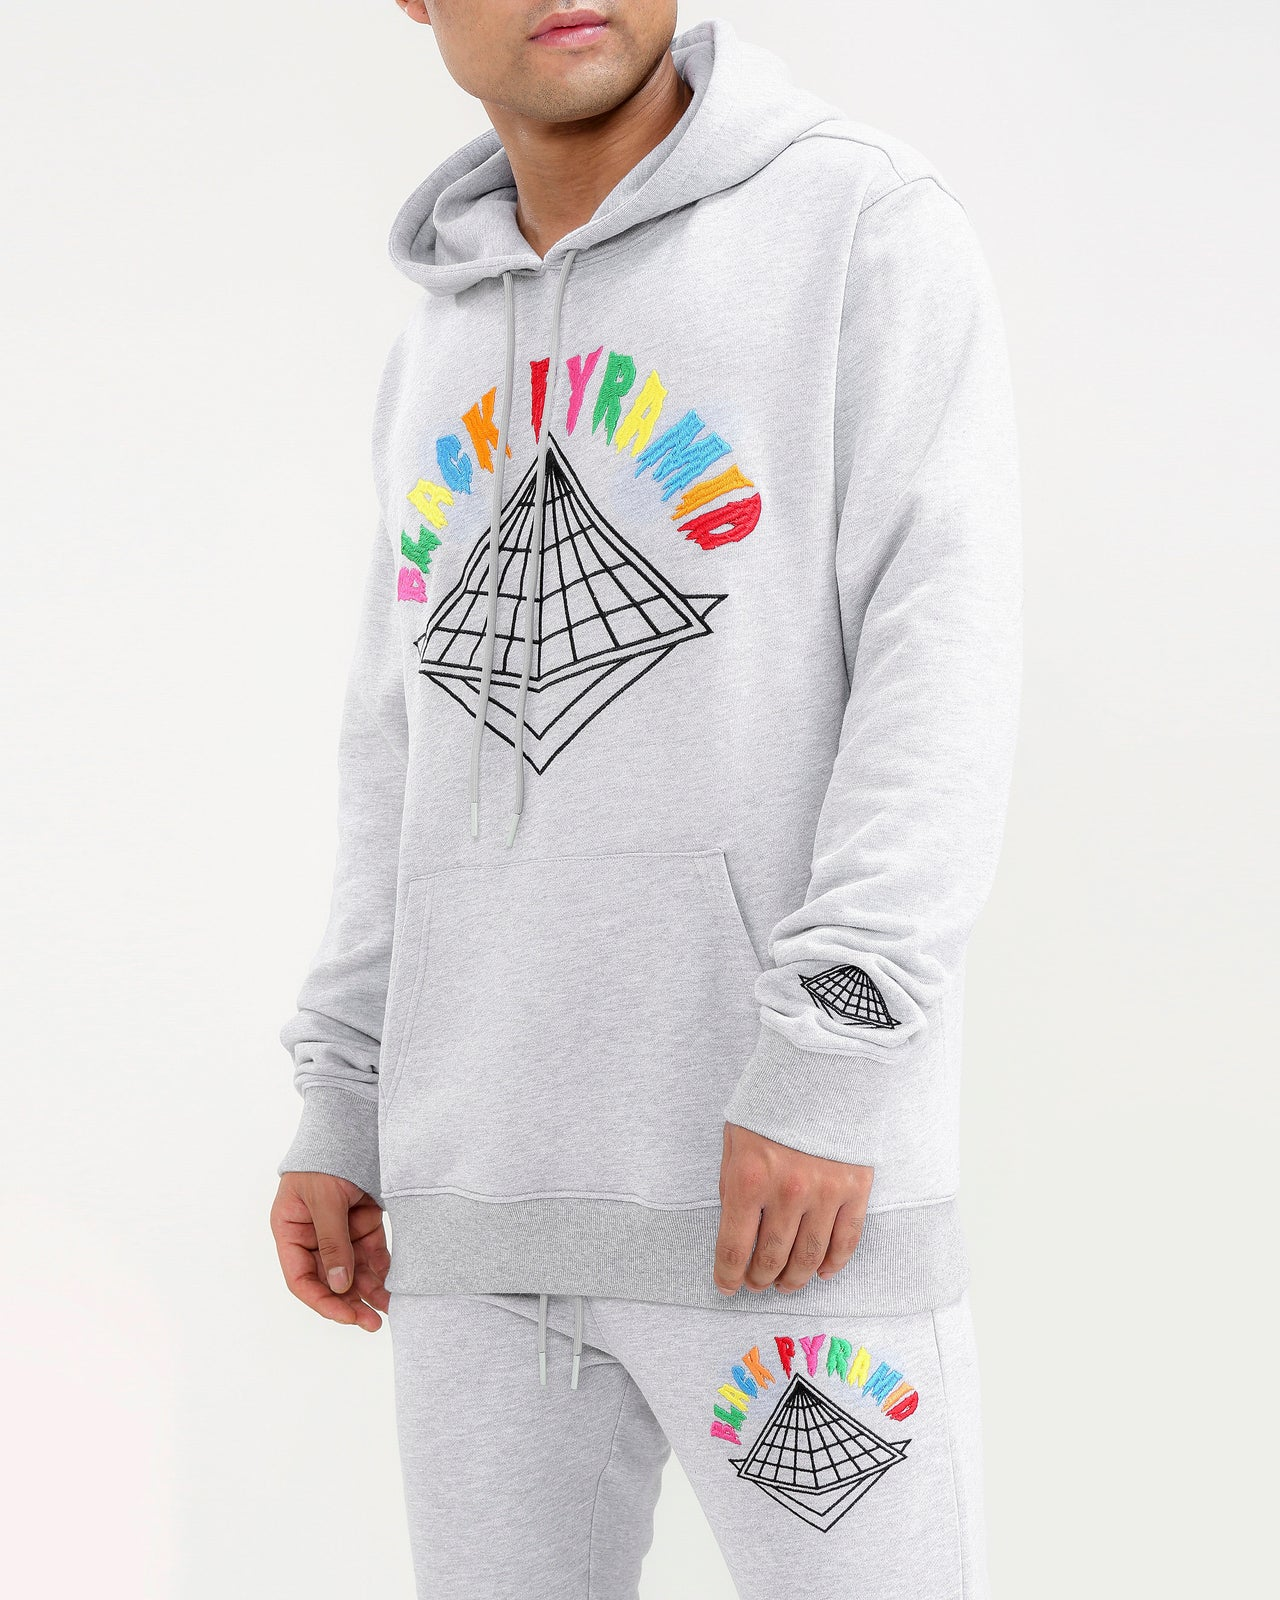 BIG AND TALL COLORS DRIP LOGO HOODY-COLOR: HEATHER GRAY